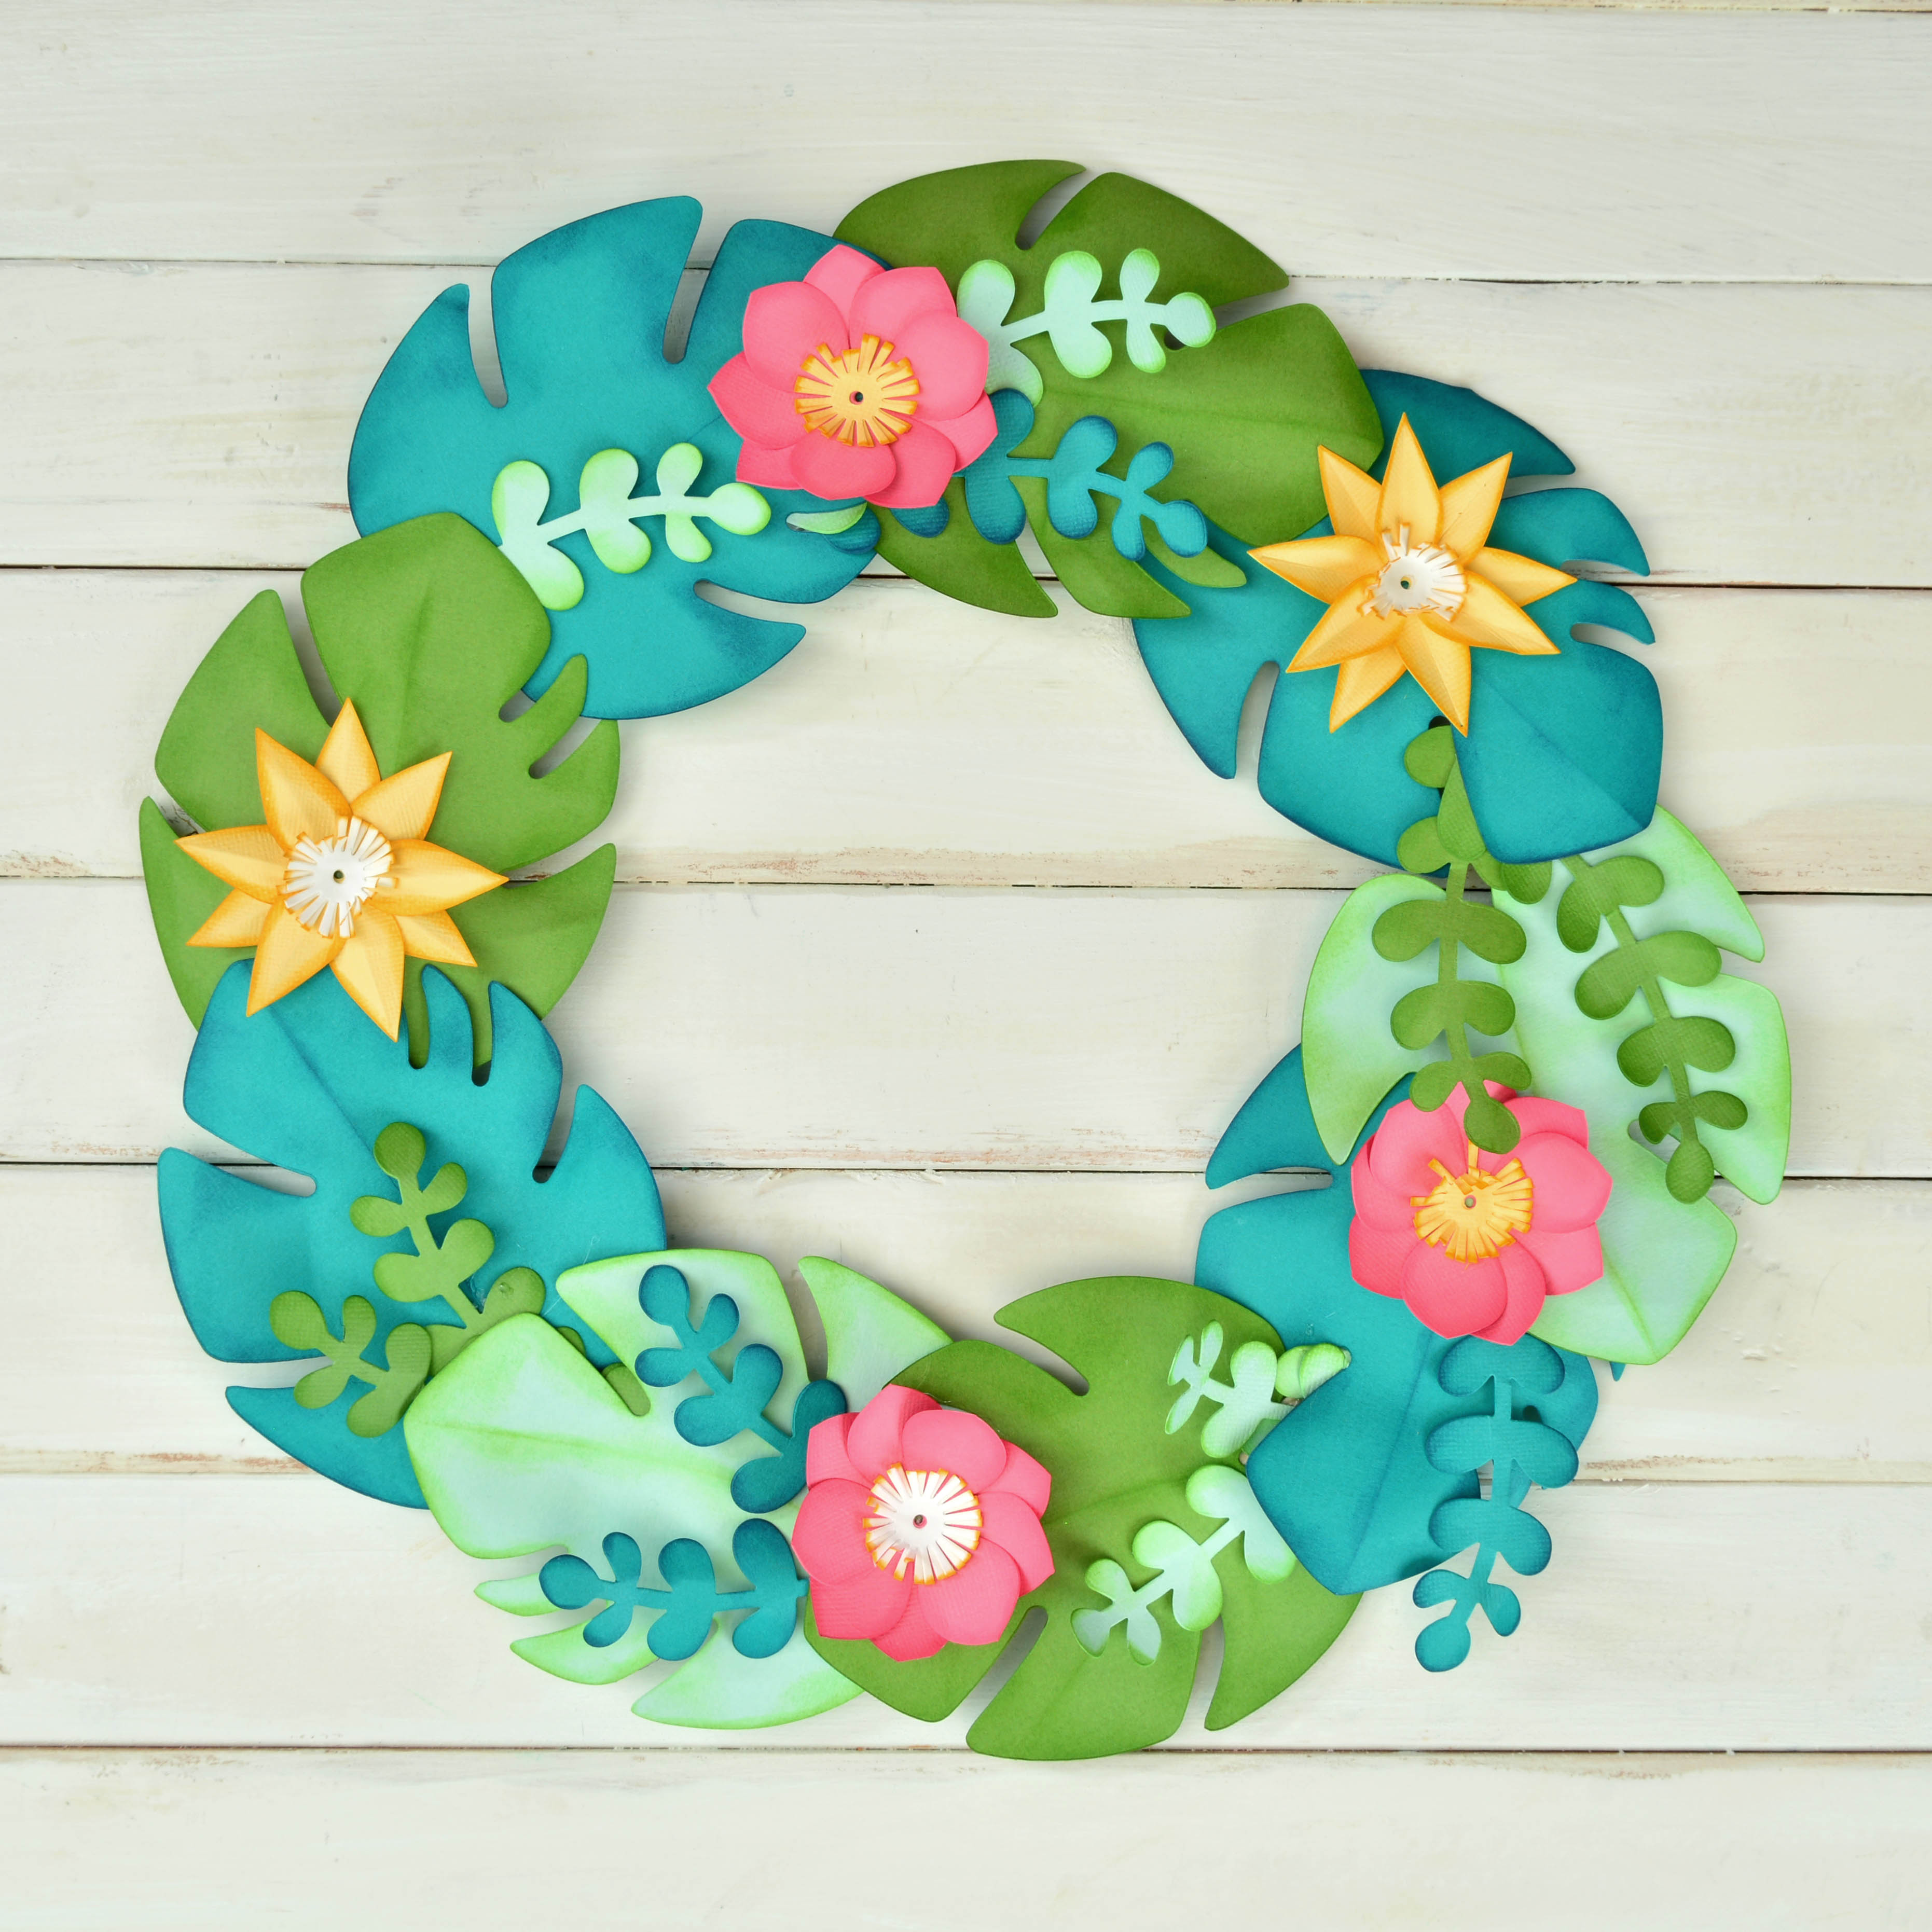 How To Make This Tropical Wreath Sizzix Blog The Start